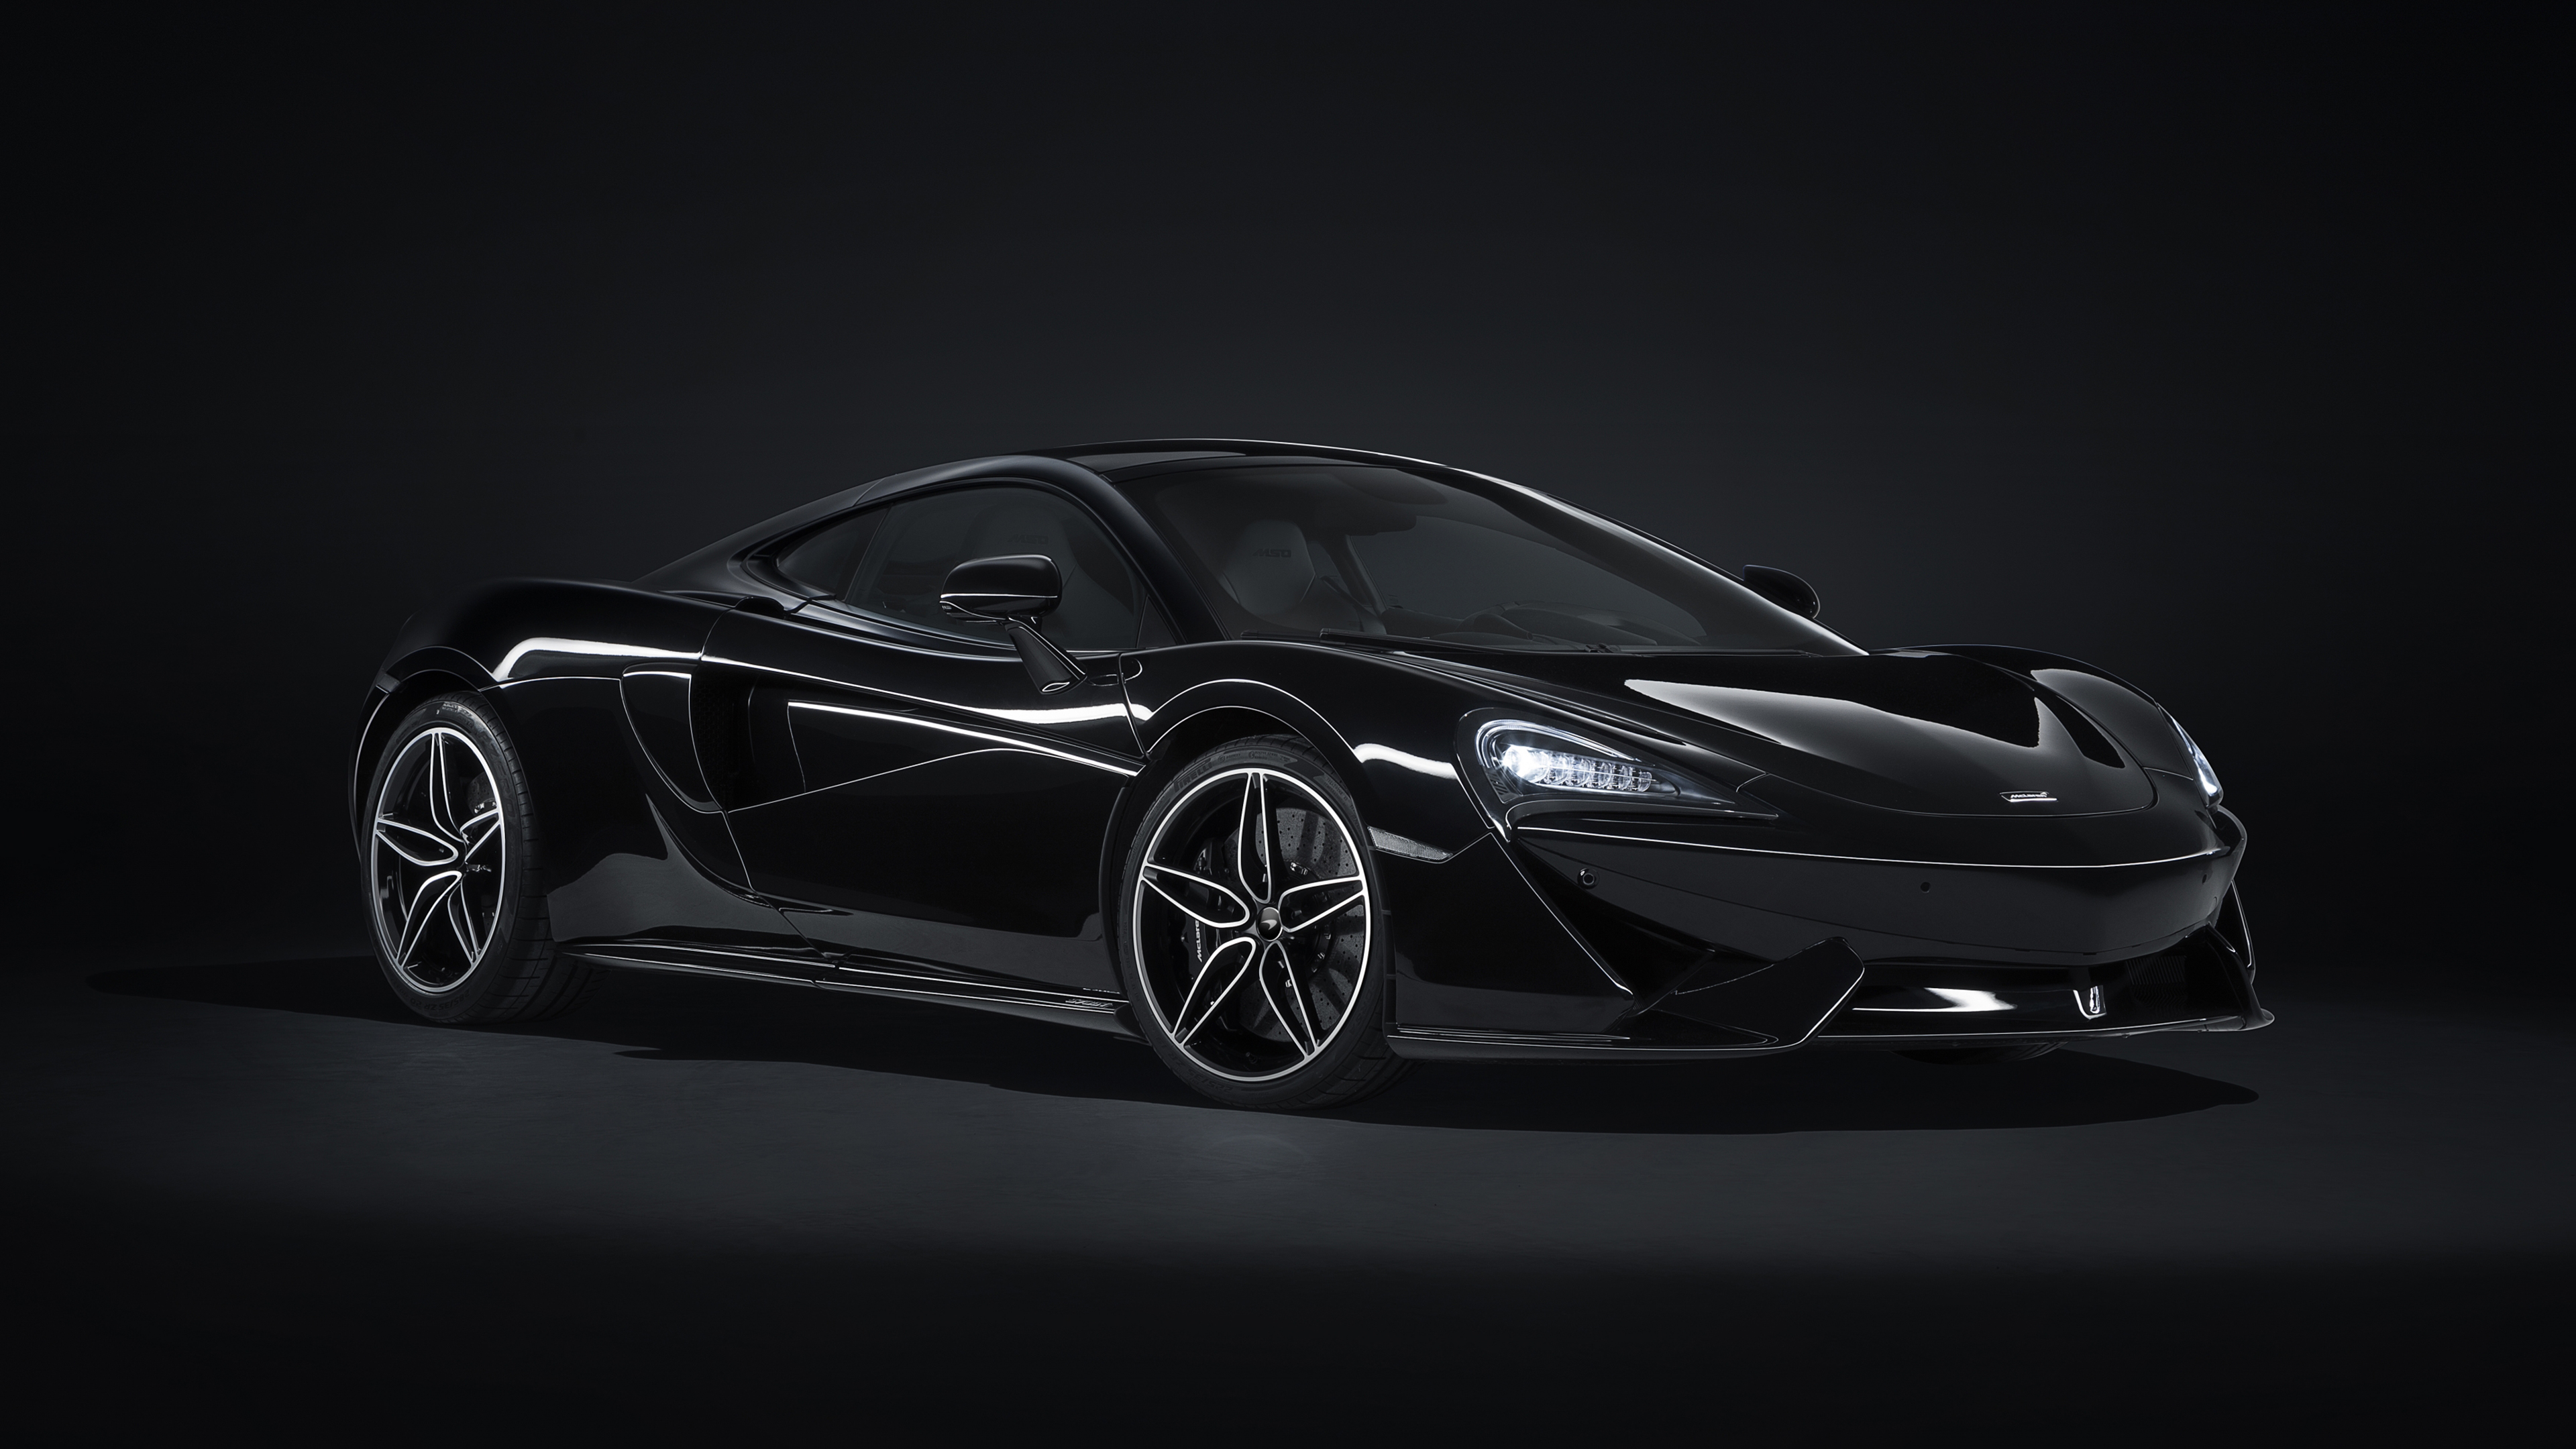 Mso Mclaren 720s Black 4k Wallpaper Hd Car Wallpapers Id